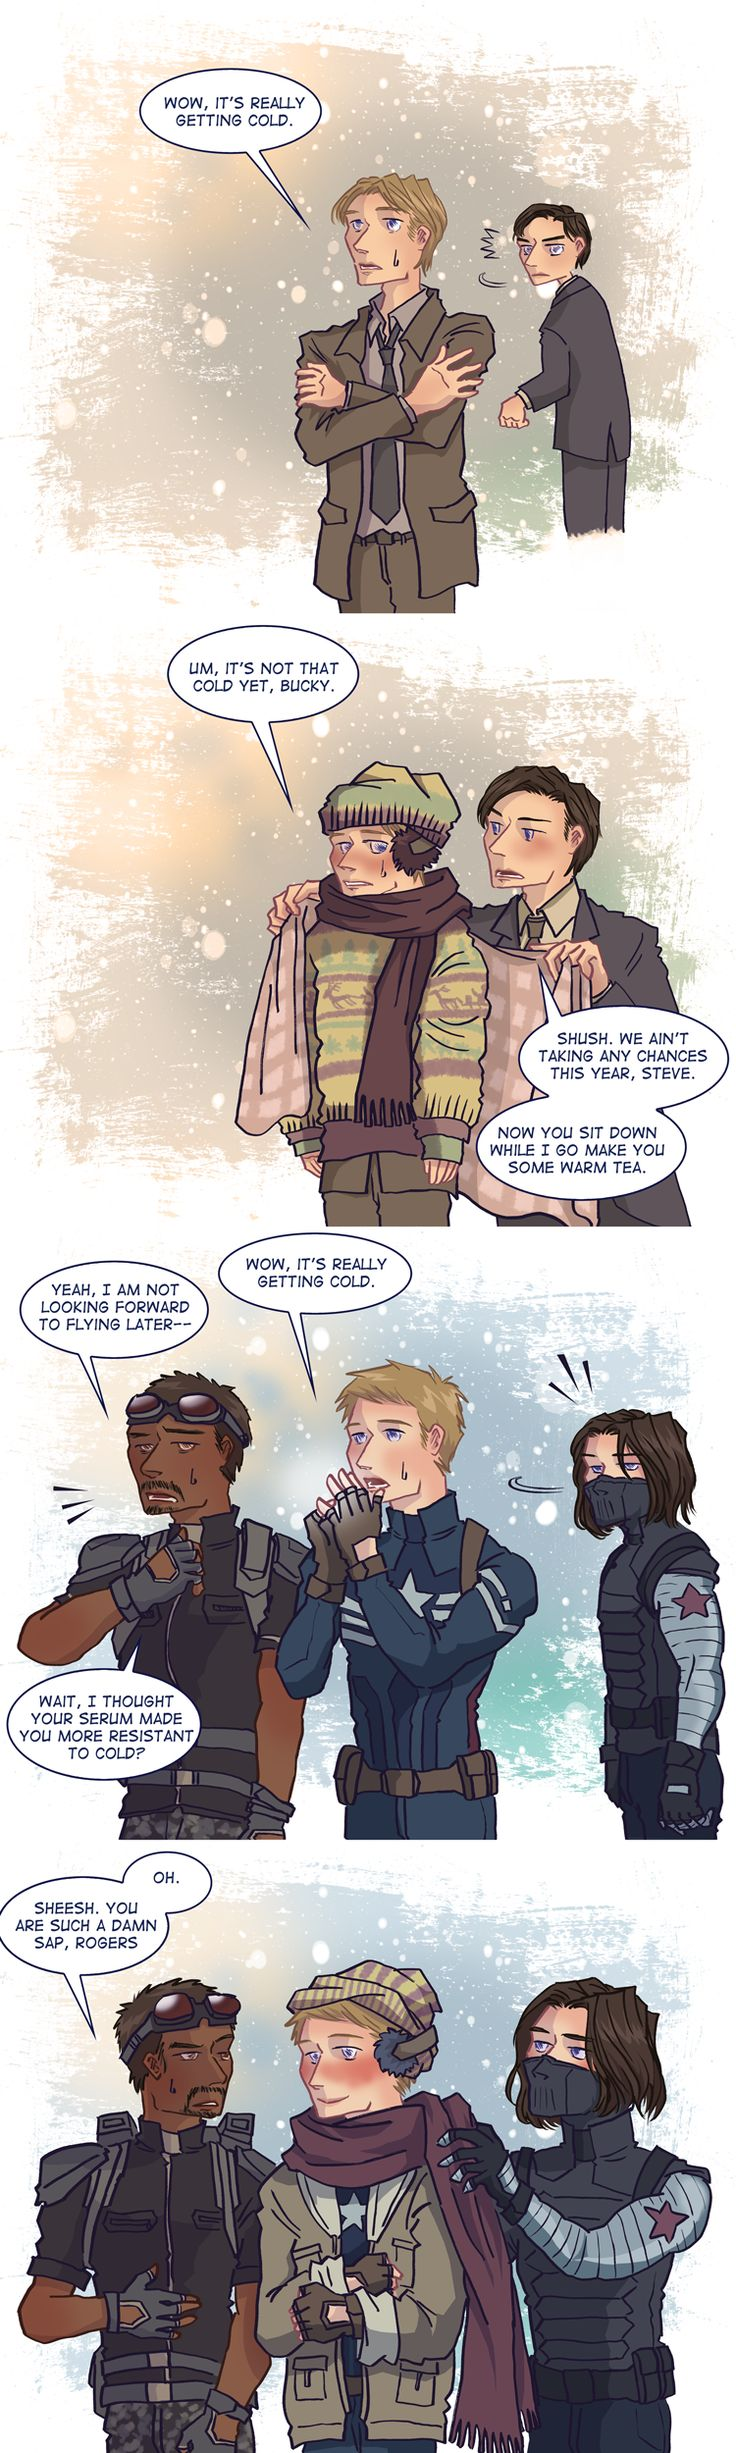 I FINALLY FOUND THIS THING.  Sam points out an unnecessary fact, Steve uses the weather to his advantage, and Bucky rewards his BFF with love, care, and eternal affection in the form of a scarf, ear muffs, and a jacket.  Isn't it just so sweet and wonderful you wanna gouge out your eyes?  :D